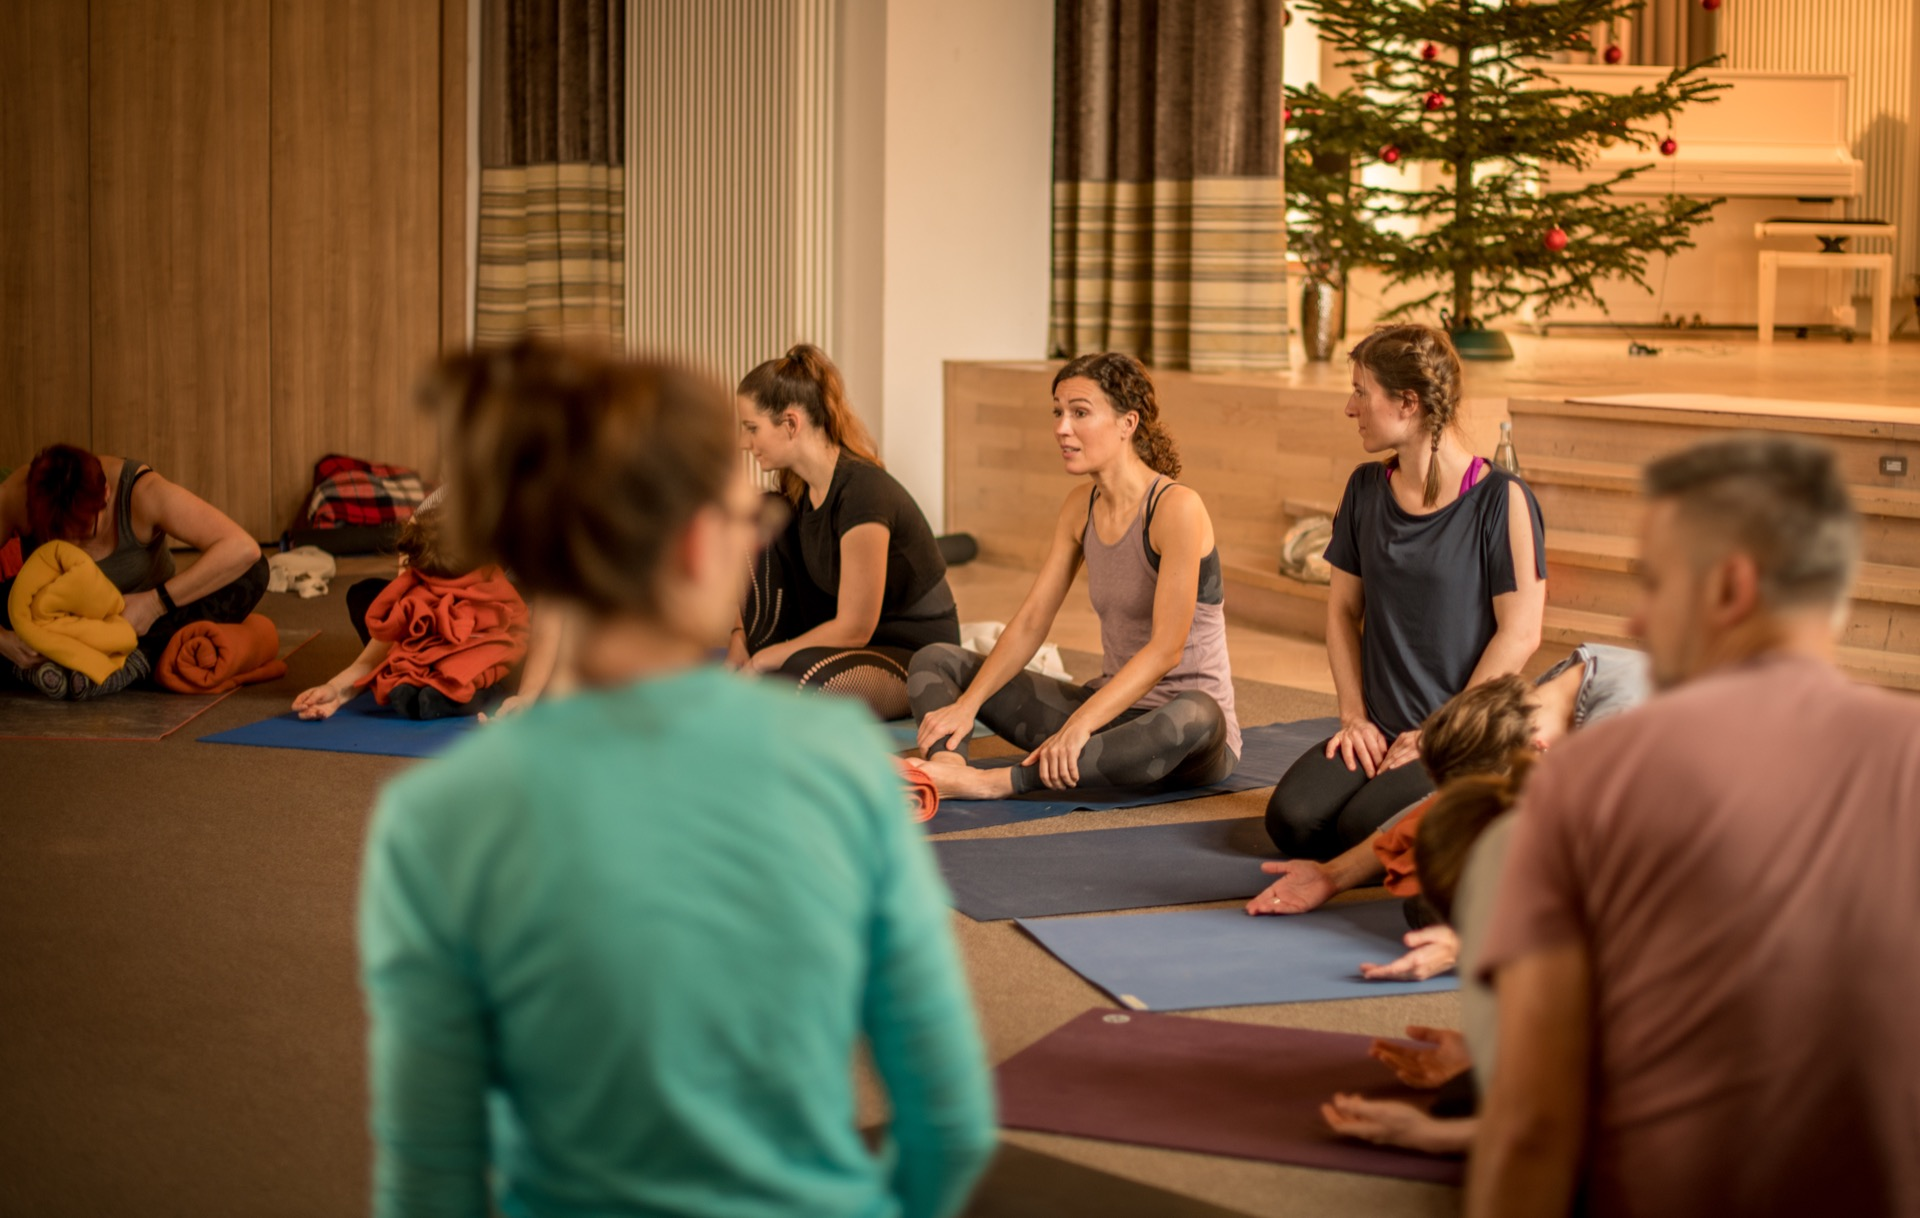 A-New-Beginning-Hie-Kim-Yoga-Retreat-Alina-Matis-Photography-012 - Hie Kim Yoga - Yoga Retreat - Yoga Workshops und Reisen